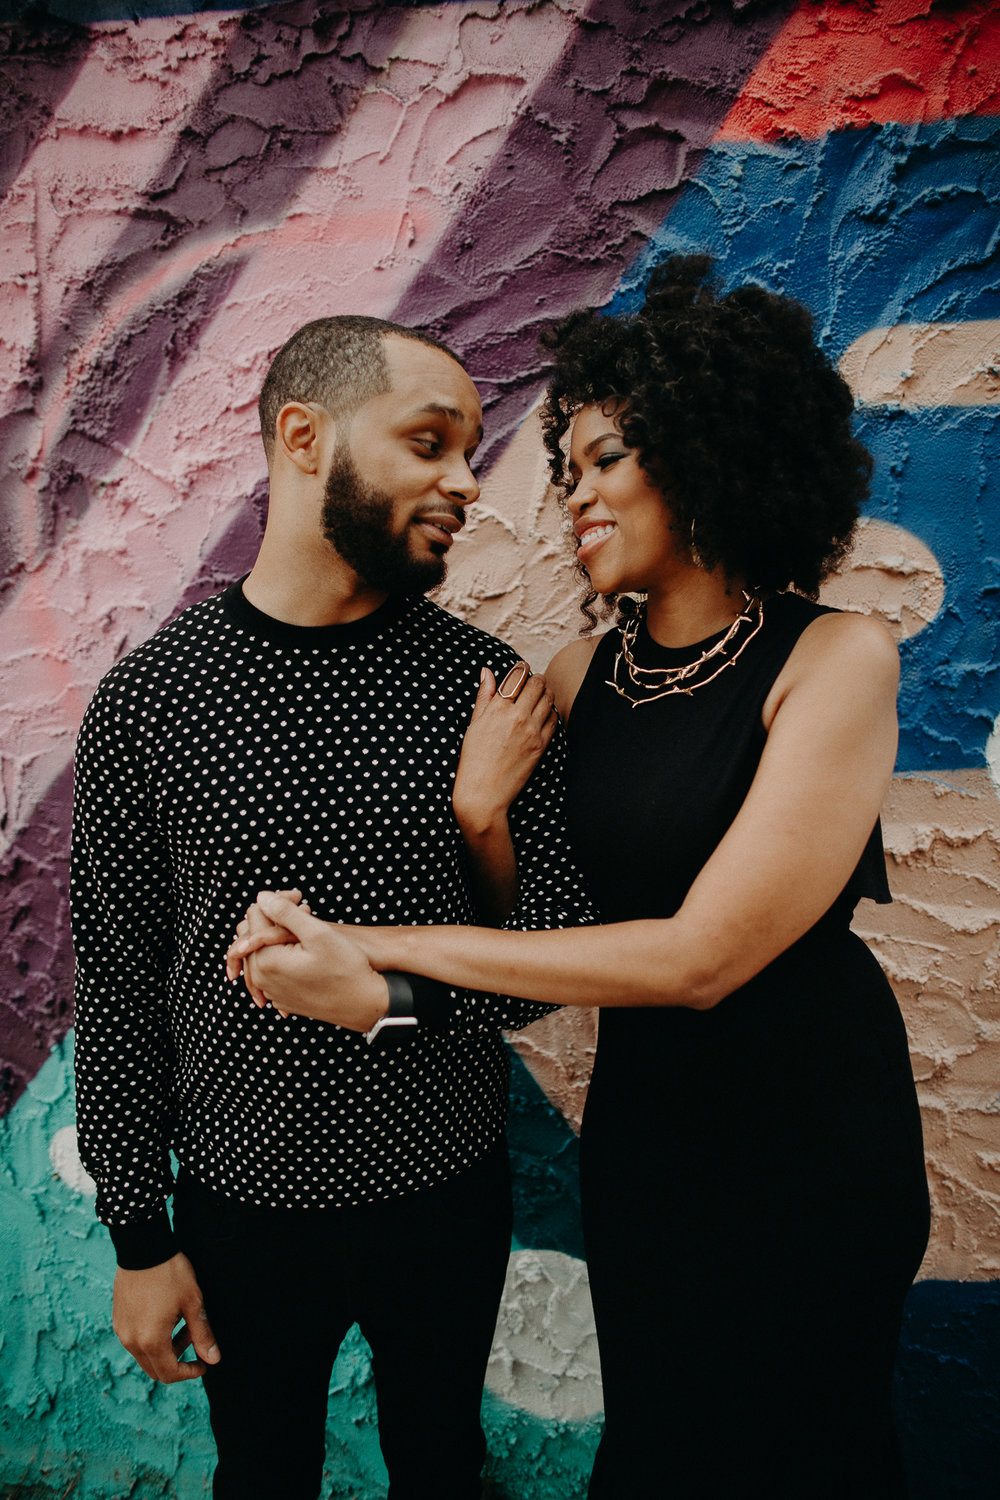 krog_street_atlanta_walls_engagement_ava+colin-4.JPG